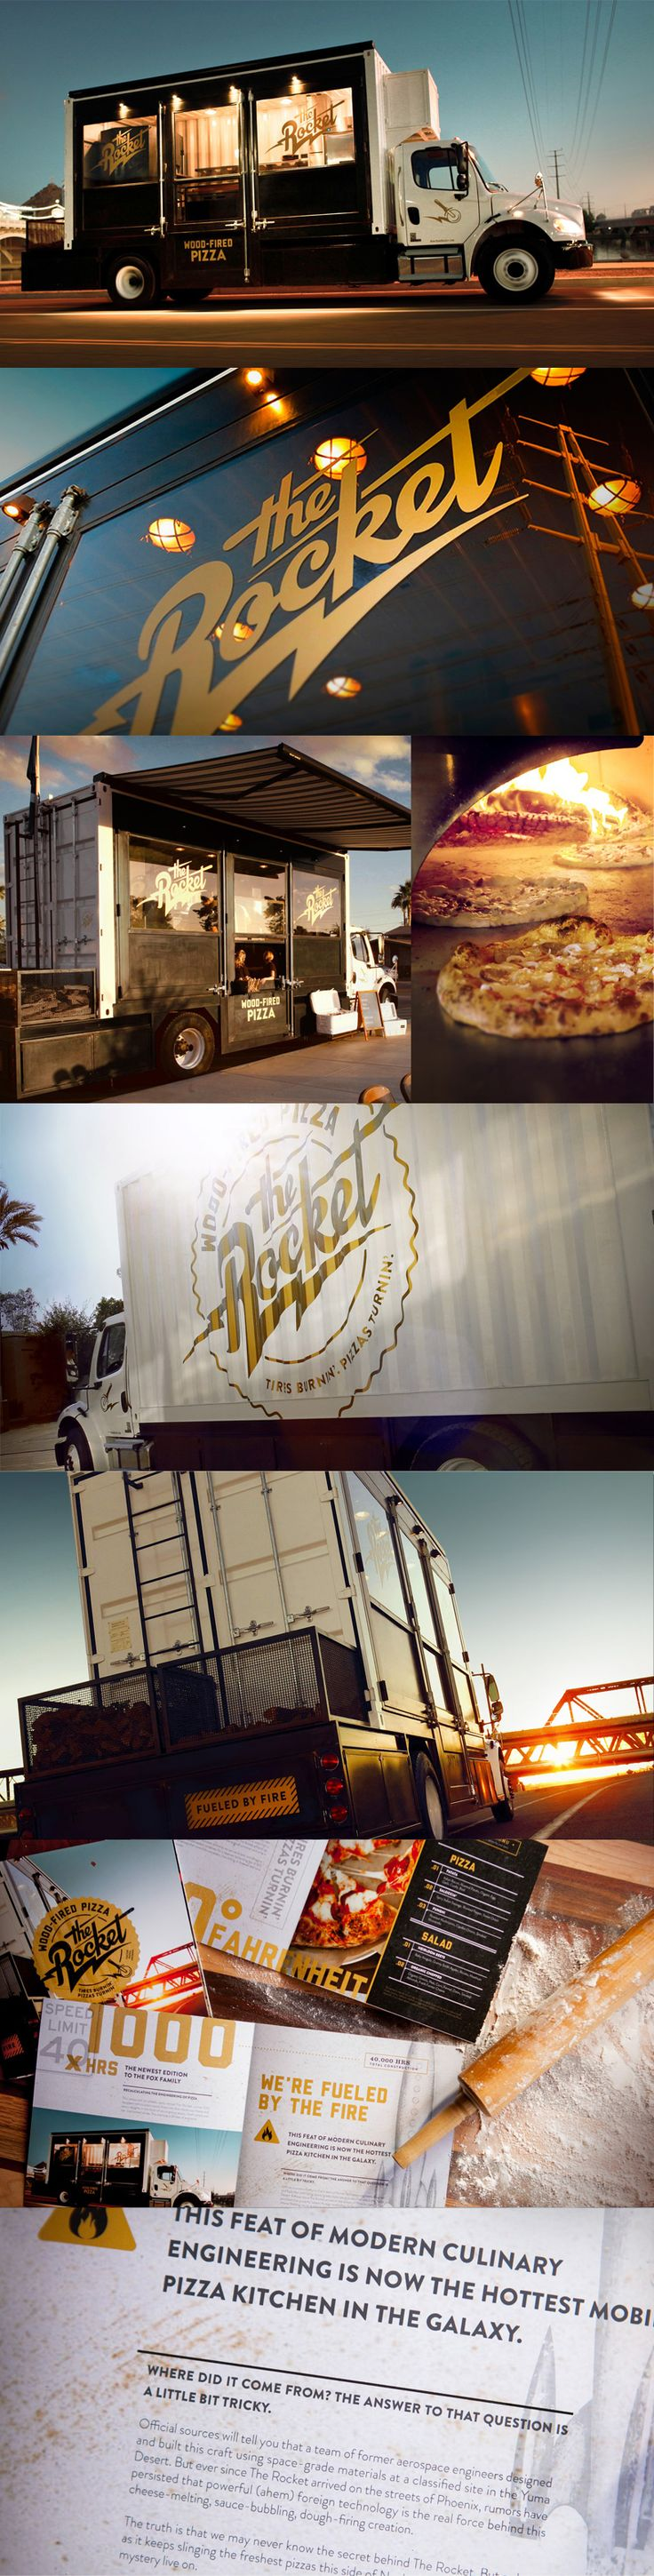 The Rocket Wood-Fired Pizza Truck